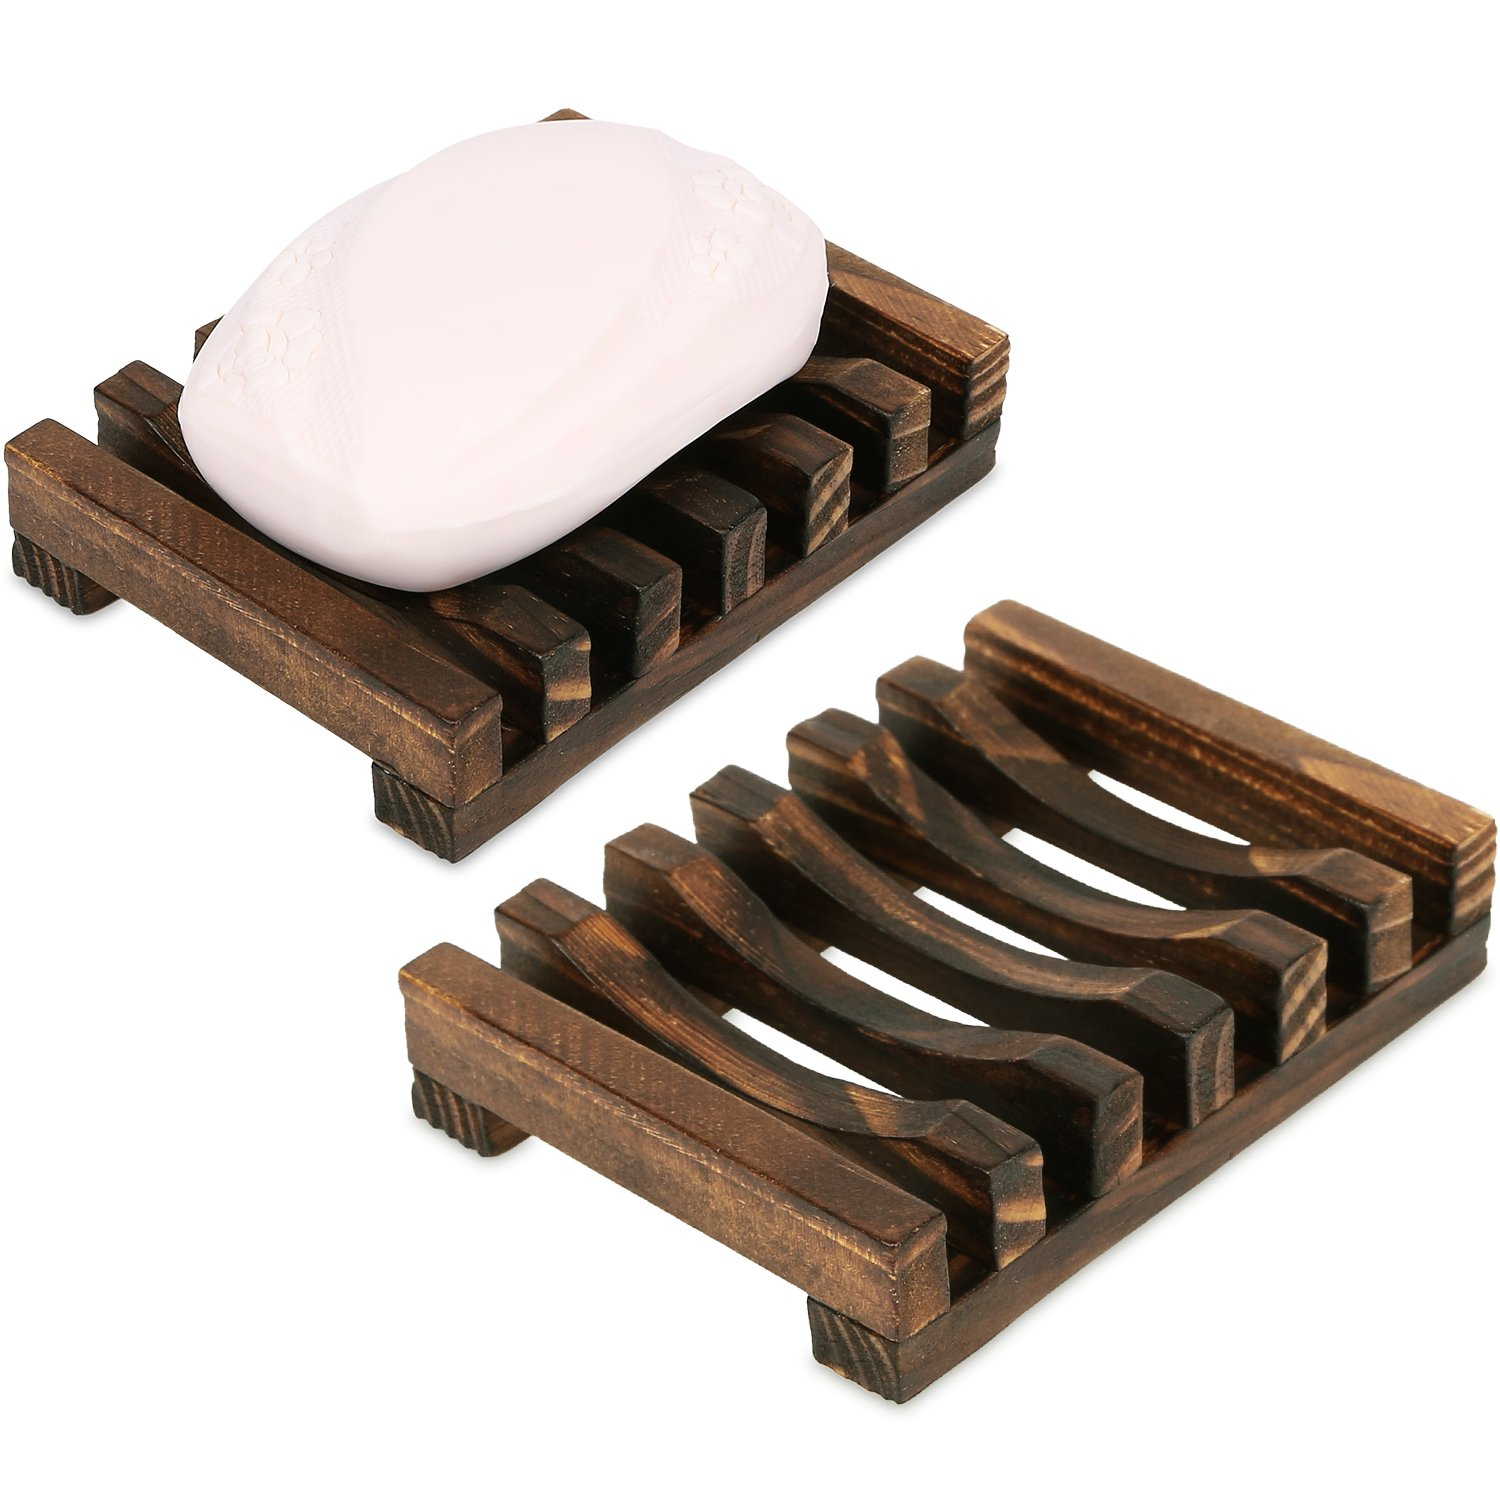 Anwenk Soap Dish Wooden Soap Saver Holder Sink Bathroom Shower Rectangular Hand Craft for Soap,Sponges and More(2 Pack) Wooden Soap Dish-2Pack